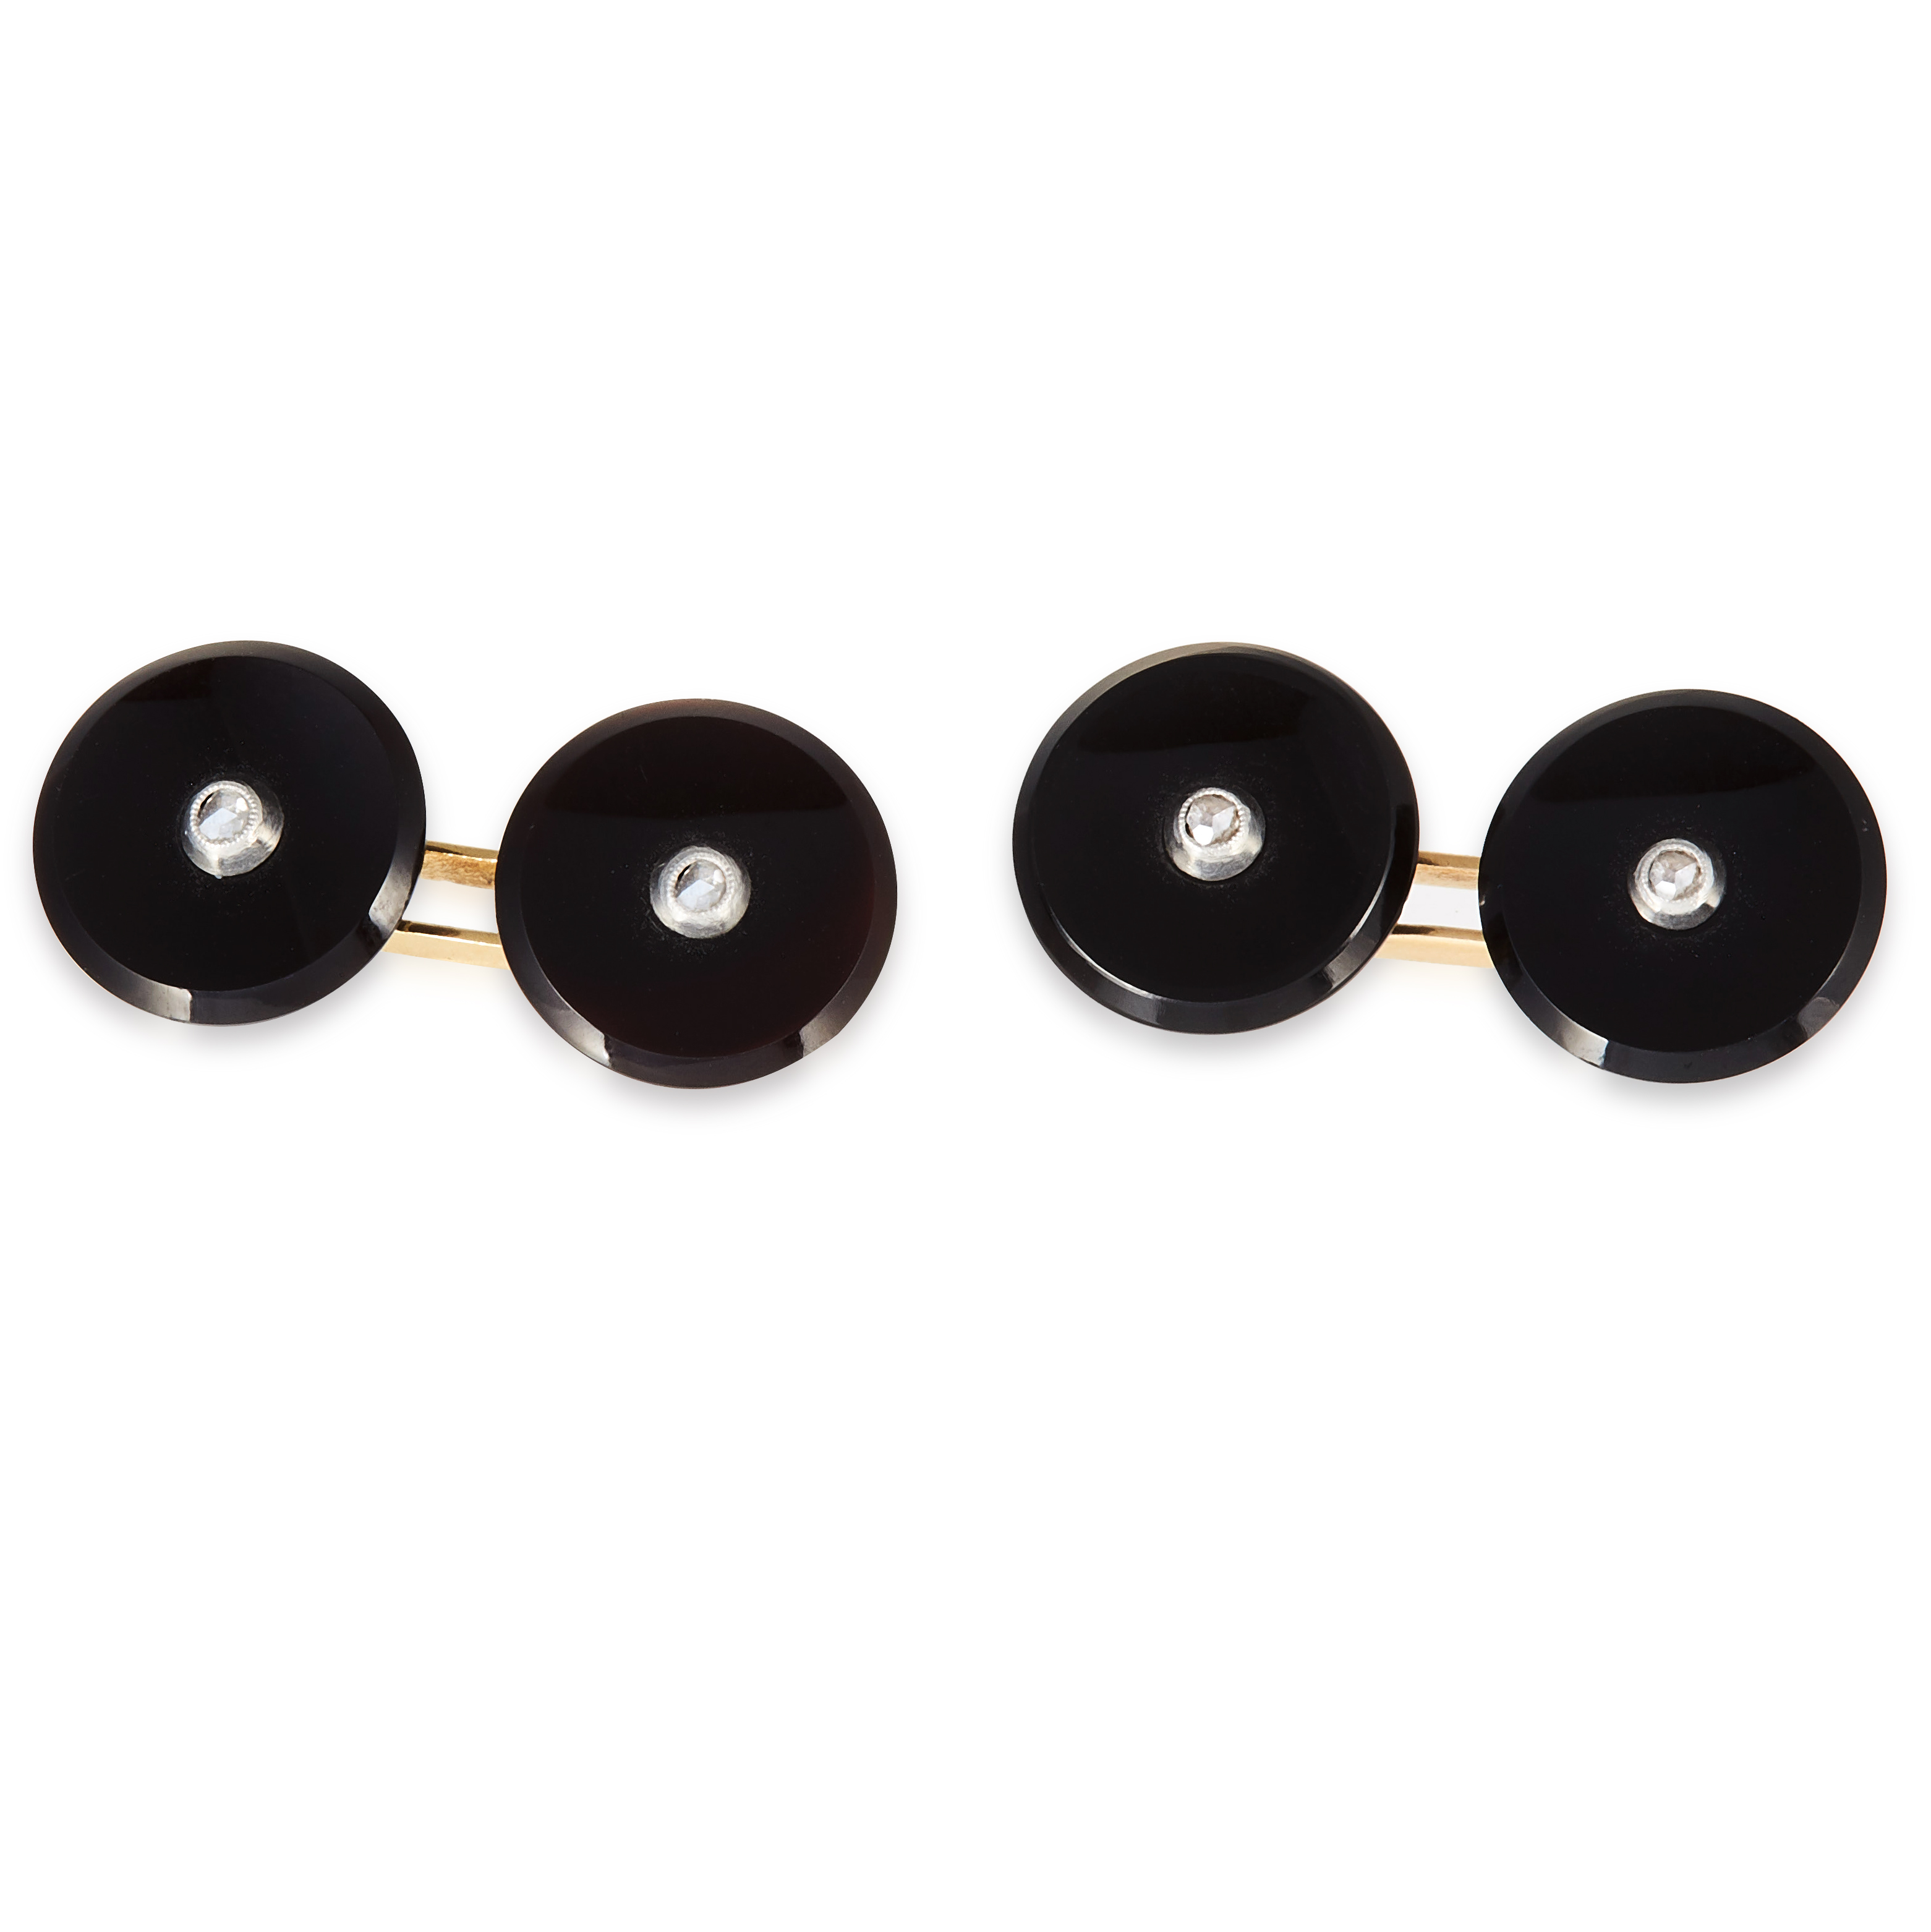 A PAIR OF ART DECO DIAMOND AND ONYX CUFFLINKS in yellow gold, each formed of two circular polished